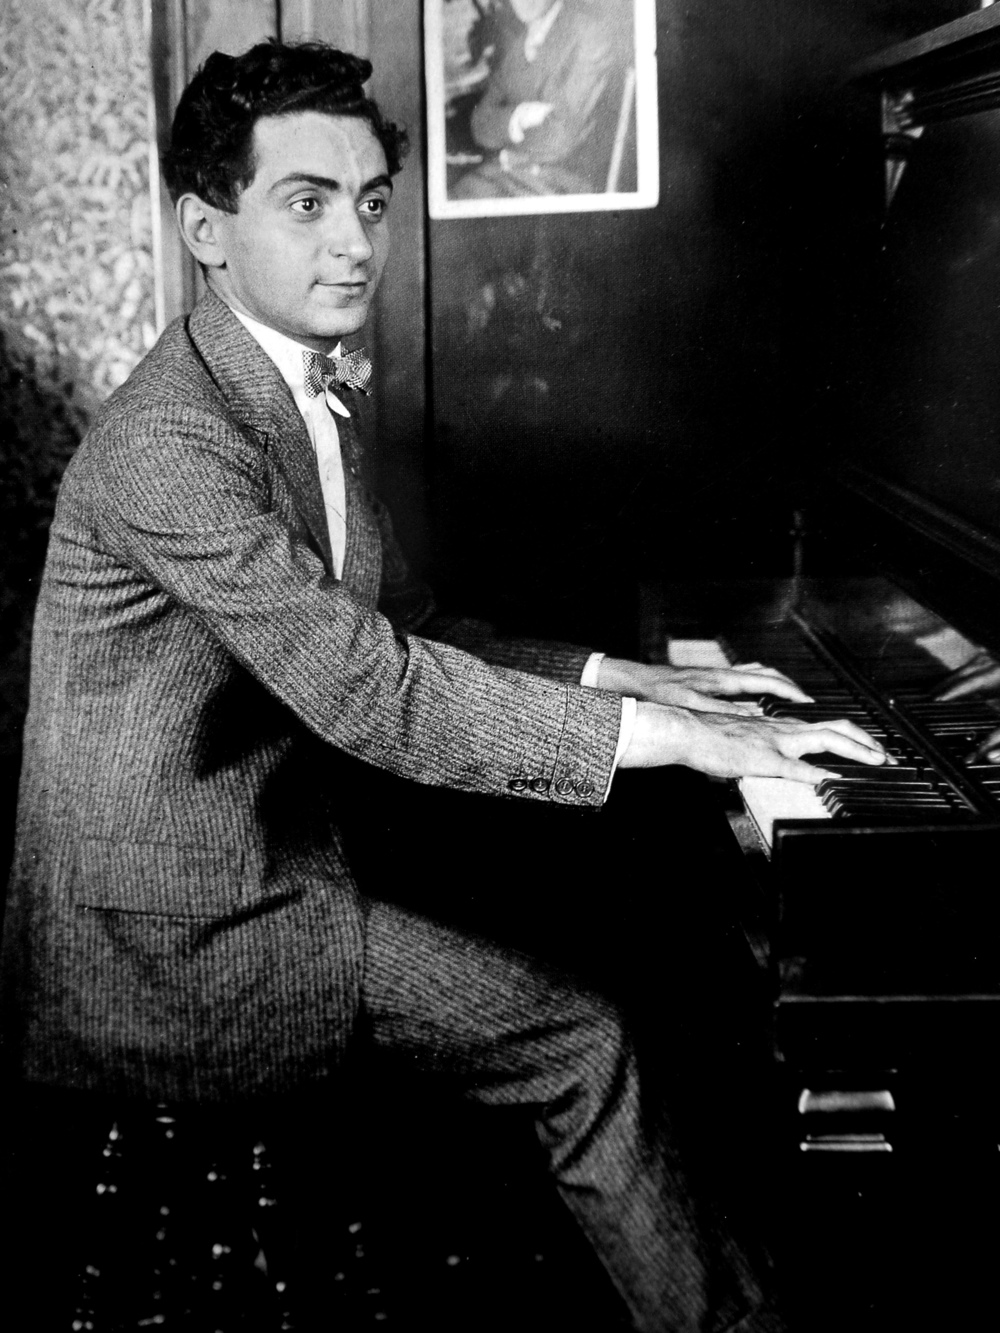 Click photo to download. Caption: A publicity photo of Irving Berlin taken in 1906. Credit: Life magazine images via Wikimedia Commons.